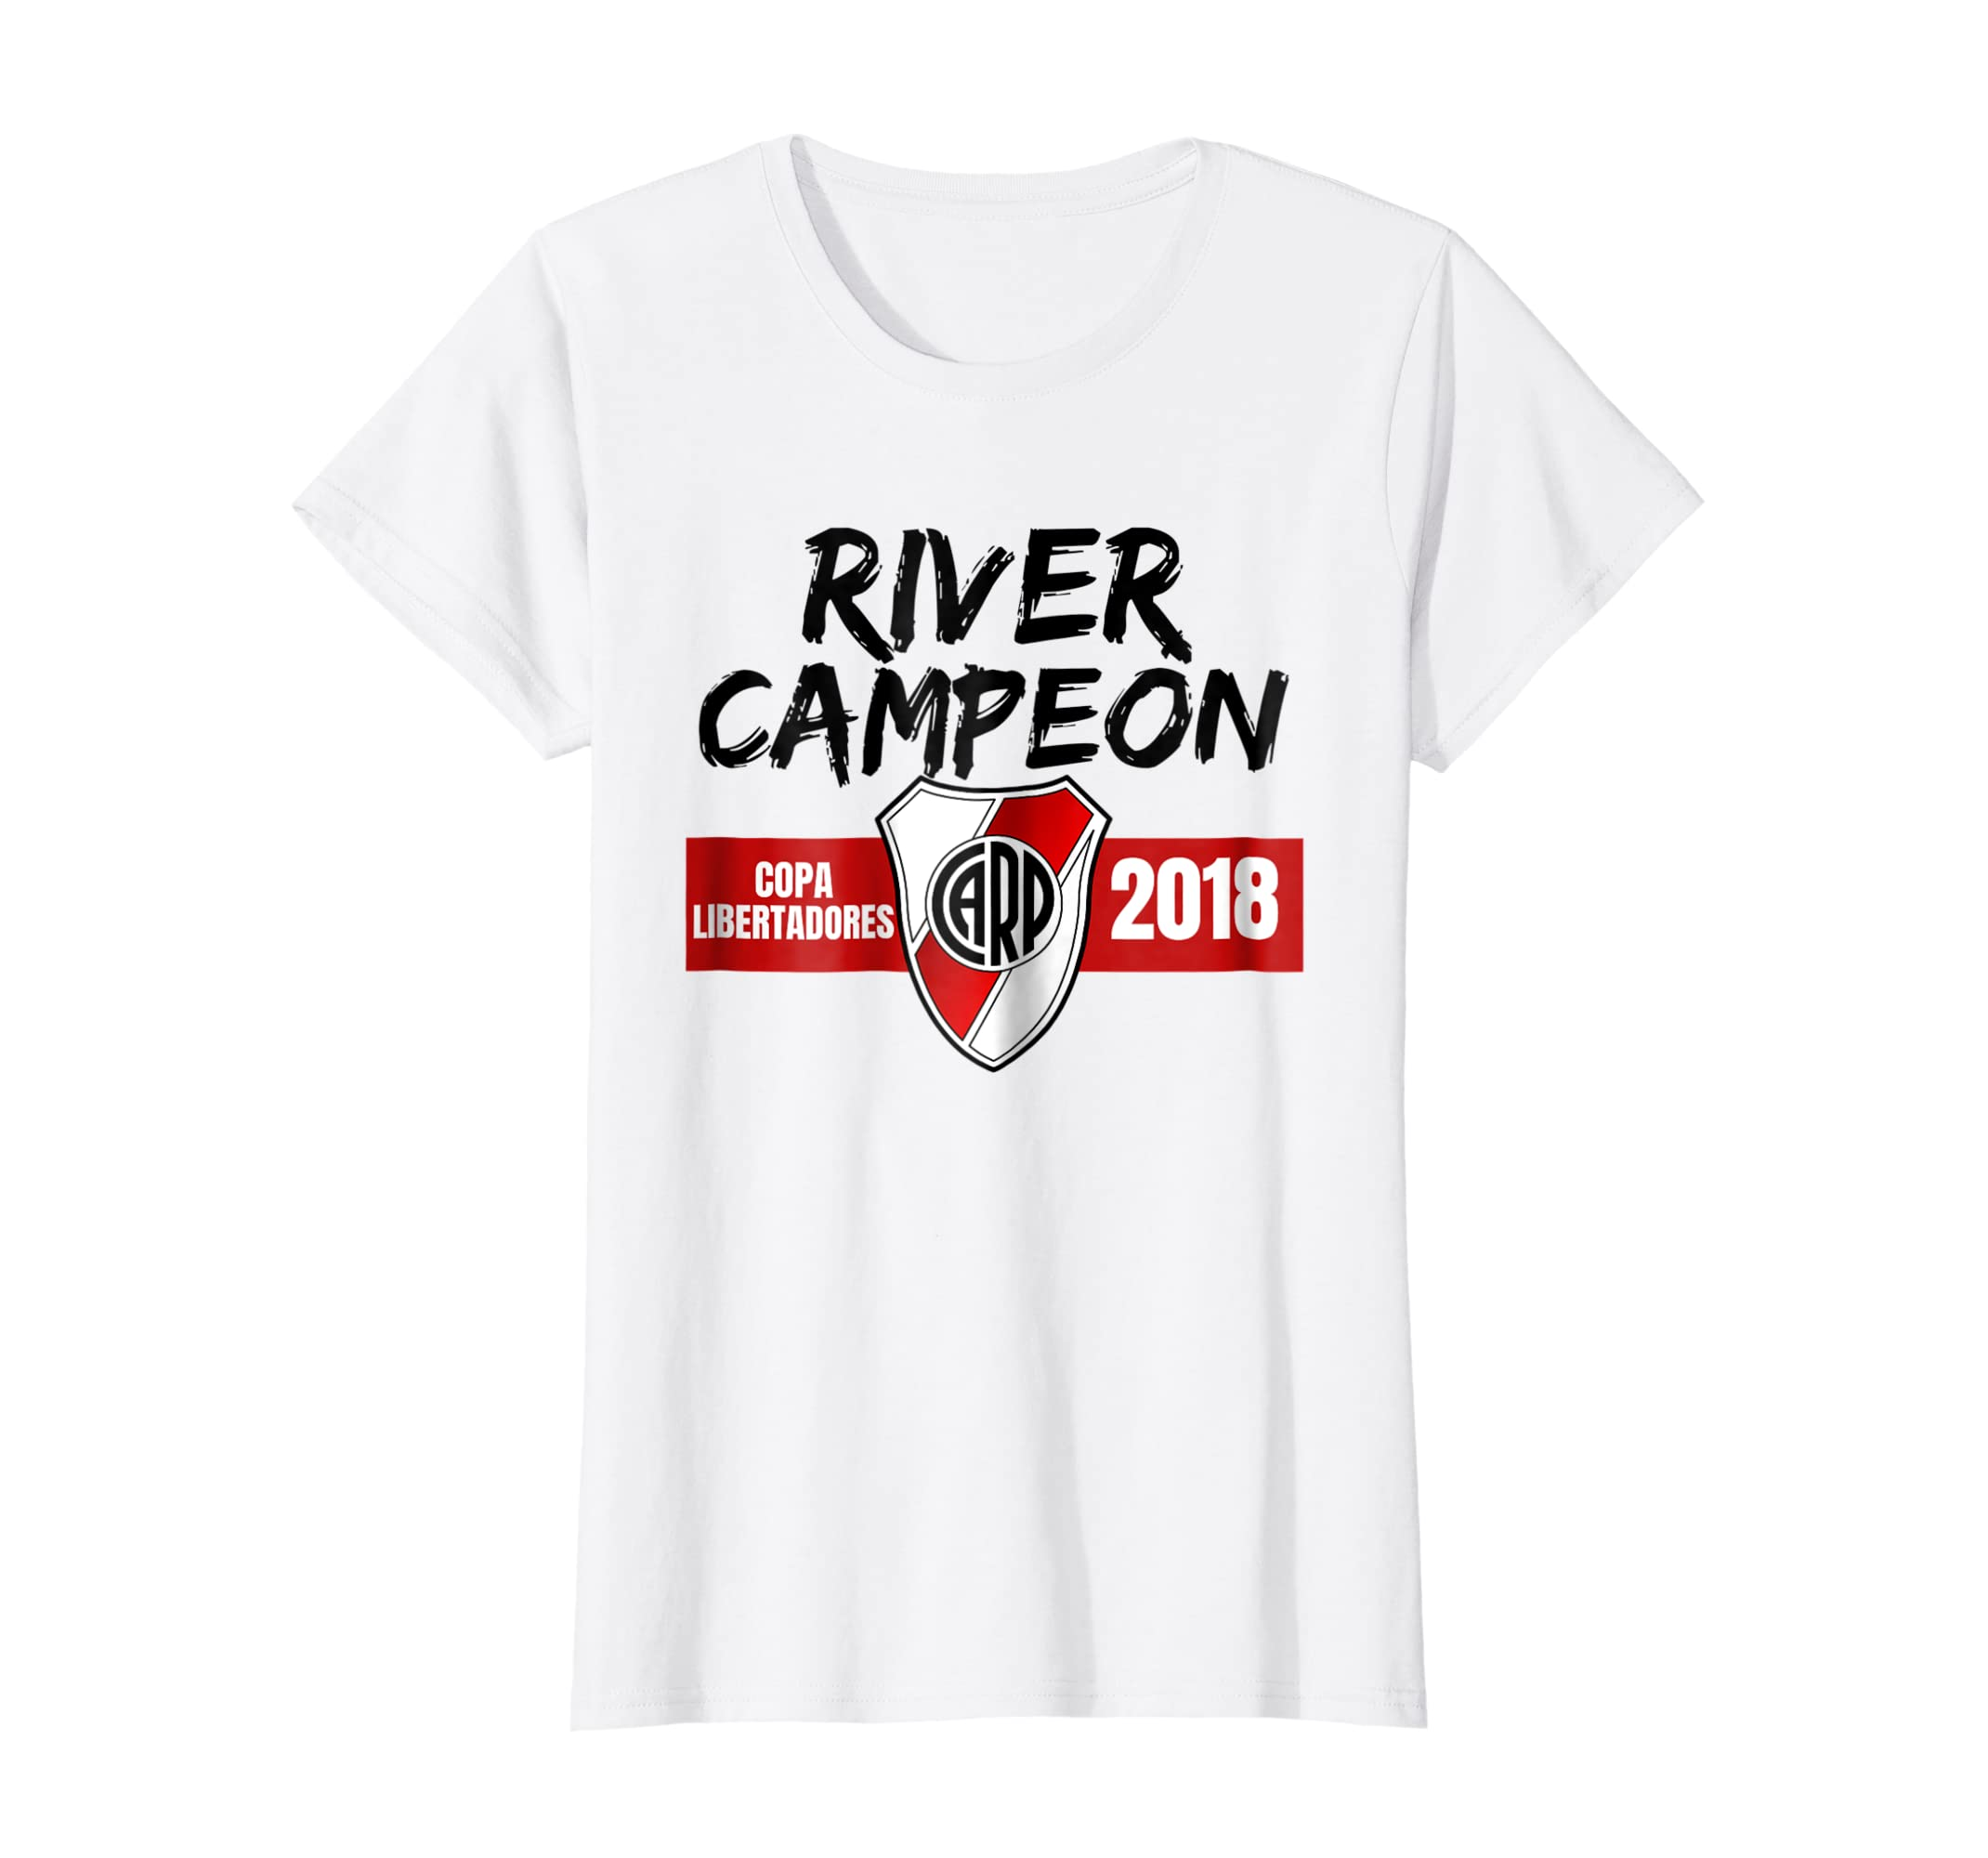 ad81f4876 Amazon.com: Camiseta River Plate Campeon Soccer Fan T-Shirt: Clothing